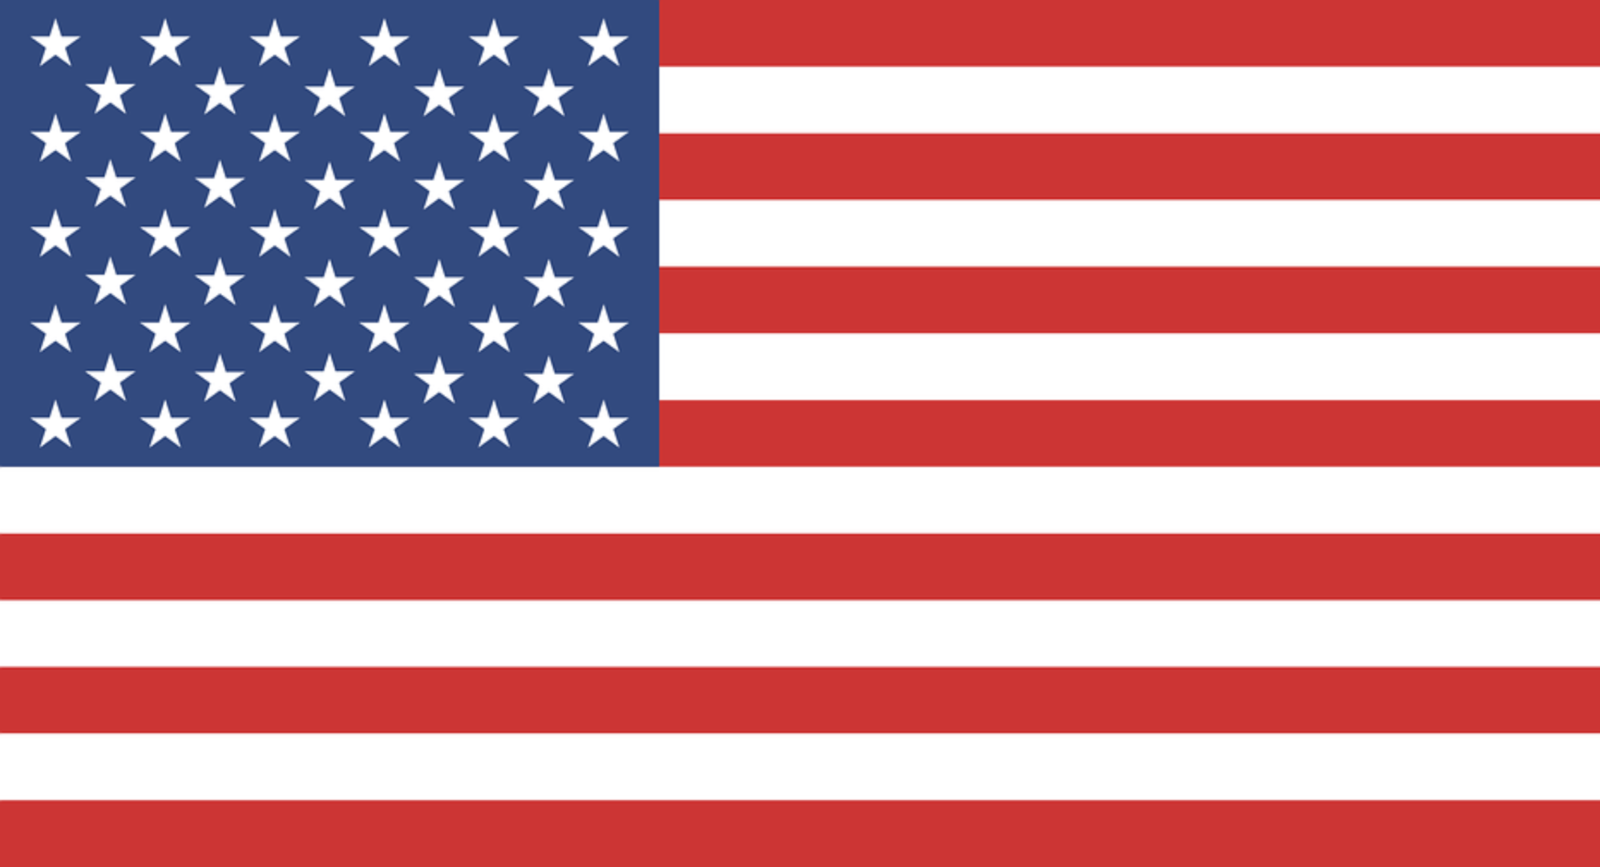 cropped-american-flag-2144392_960_720.png